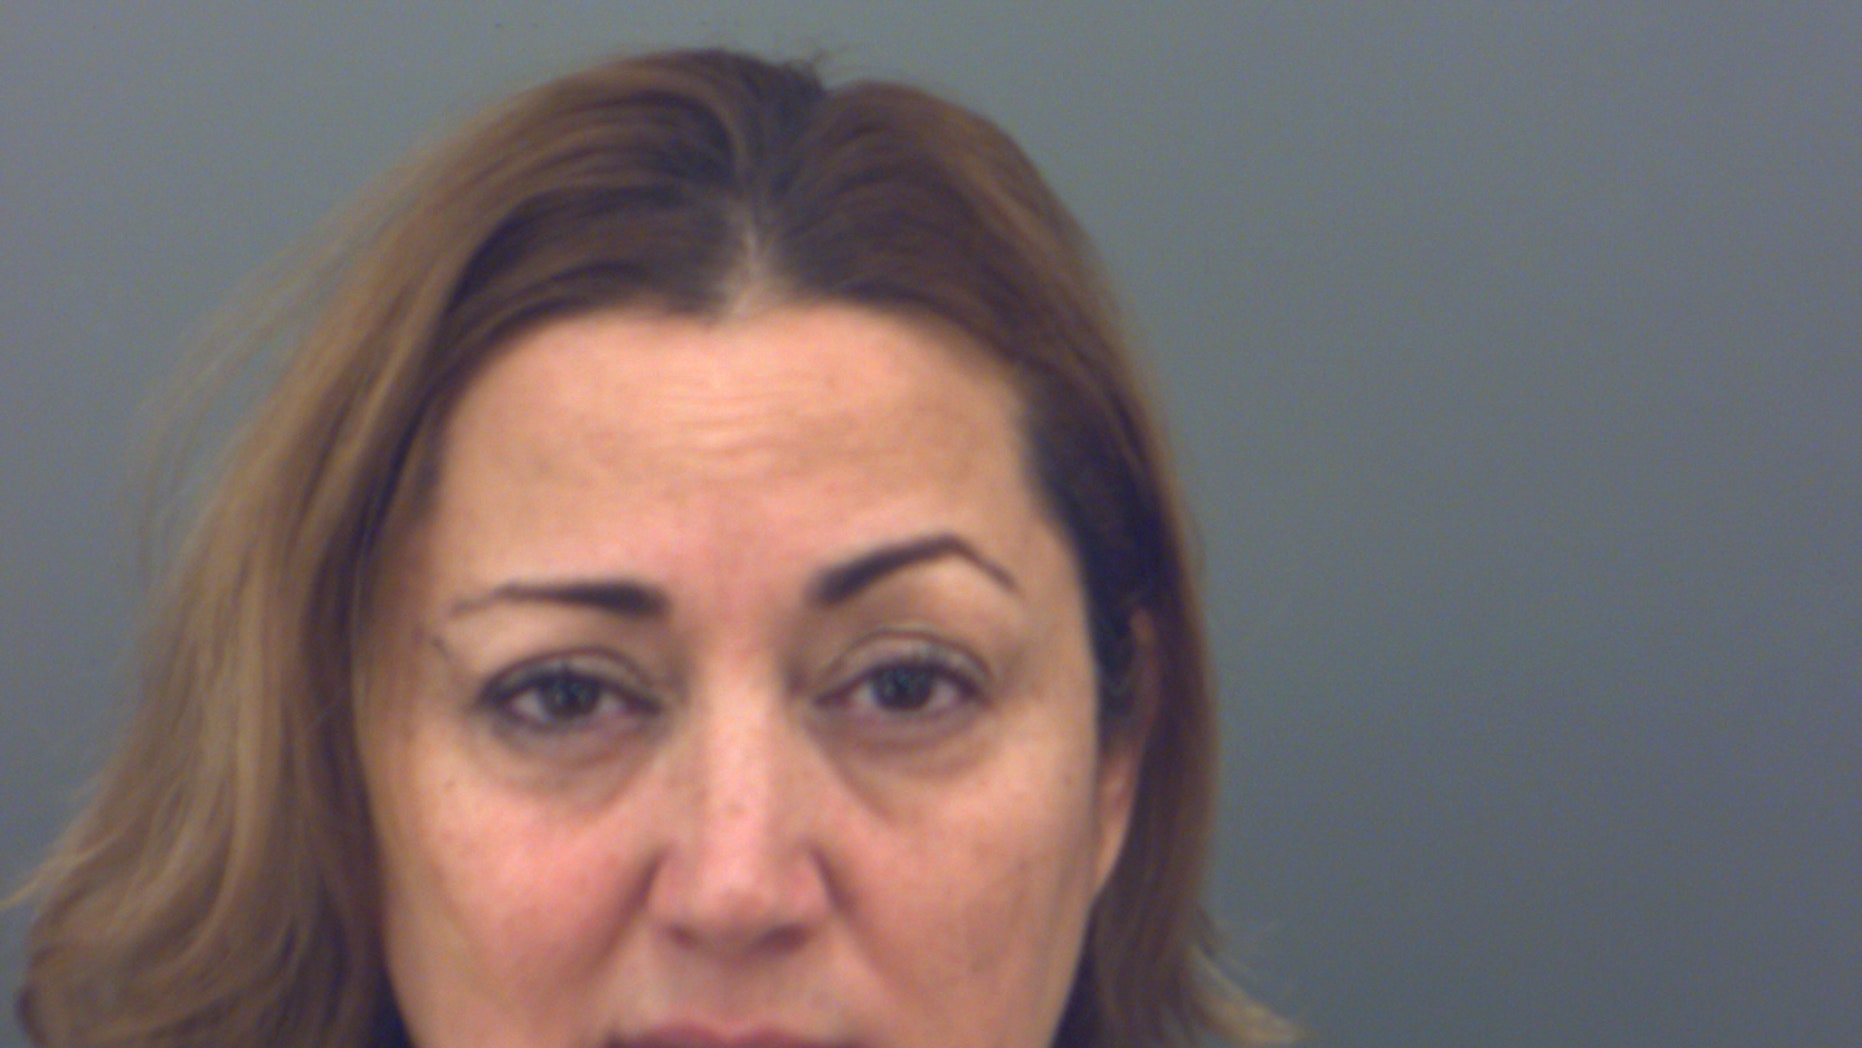 Olga Najera was arrested Monday, accused of slapping a student.